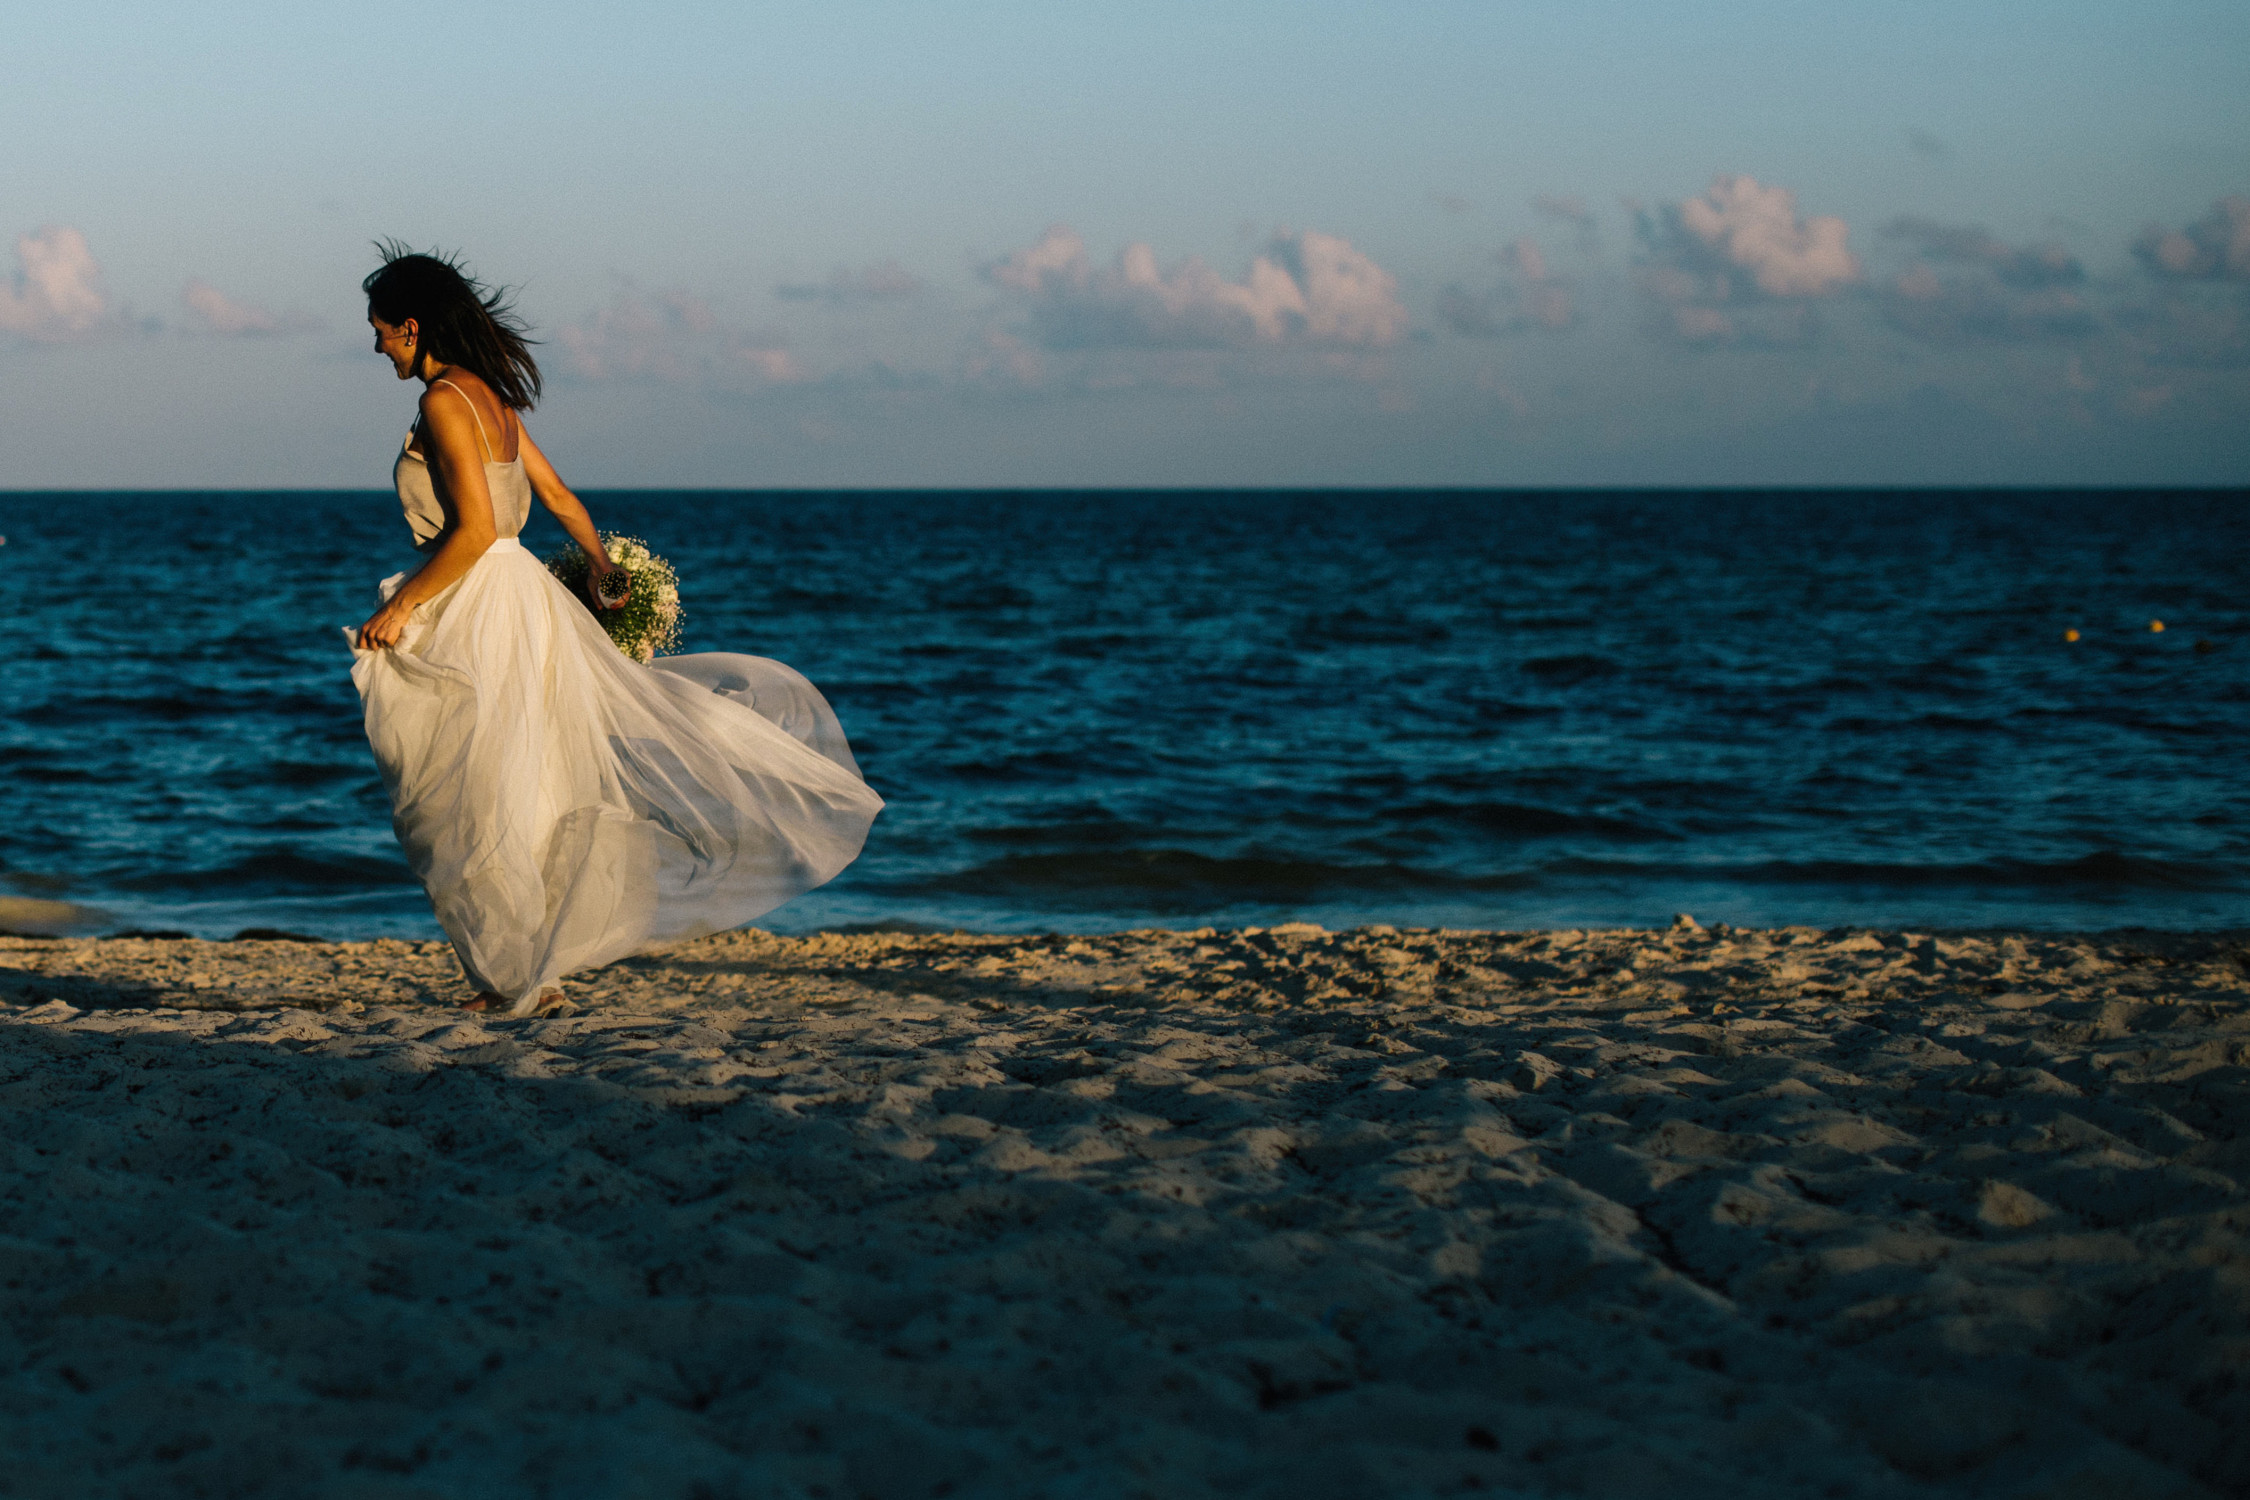 cancun-riviera-royalton-wedding-photography-kelly-clarke-photography-804